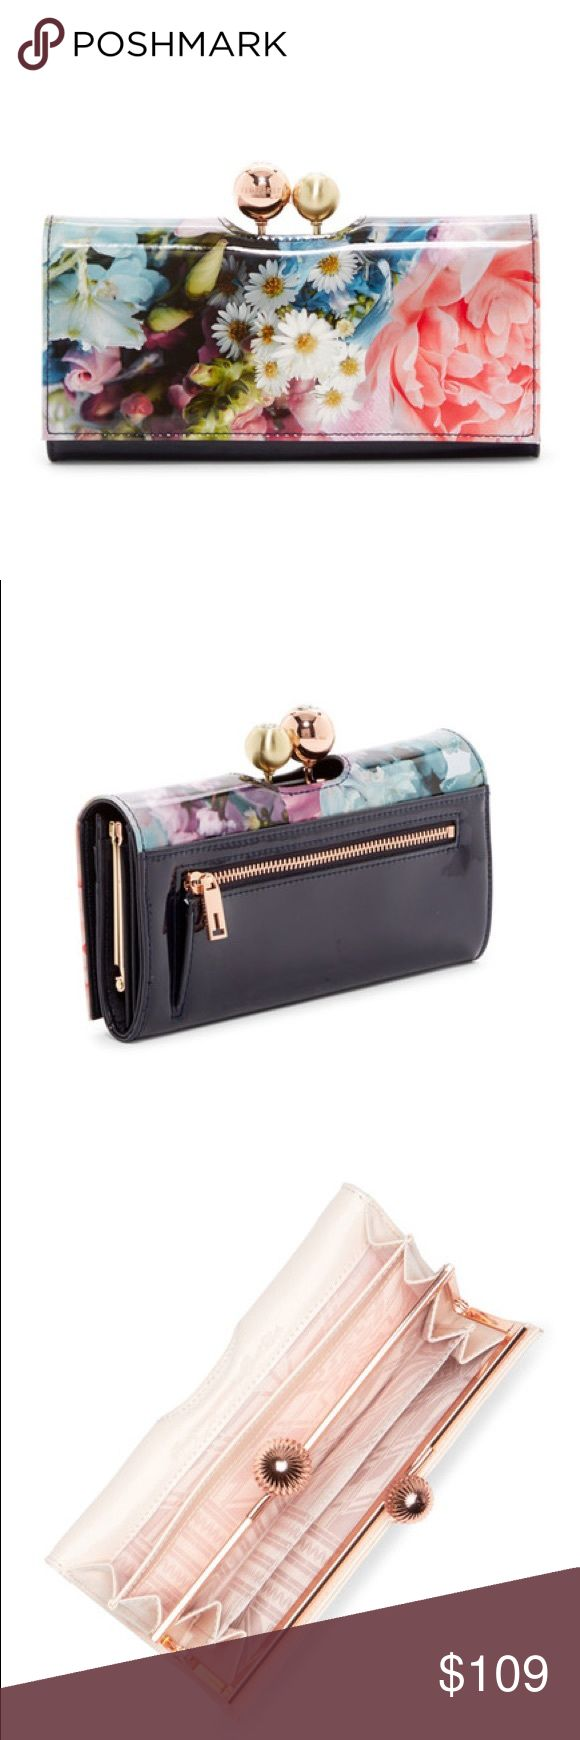 """MWT Ted Baker London Floral Print Leather Wallet A gleaming kiss-clasp set with crystals highlights a patent-leather matinee wallet in a vivacious floral pattern--so pretty, you'll want to carry it as a chic clutch, too.  - Foldover top   - Kiss-lock clasp closure  - Exterior features zip pocket and floral print  - Snap-flap exterior compartment with interior currency and slip pockets; 11 card slots; ID window  - Approx. 3.5"""" H x 7.5"""" W x 1"""" D.                                     Leather…"""